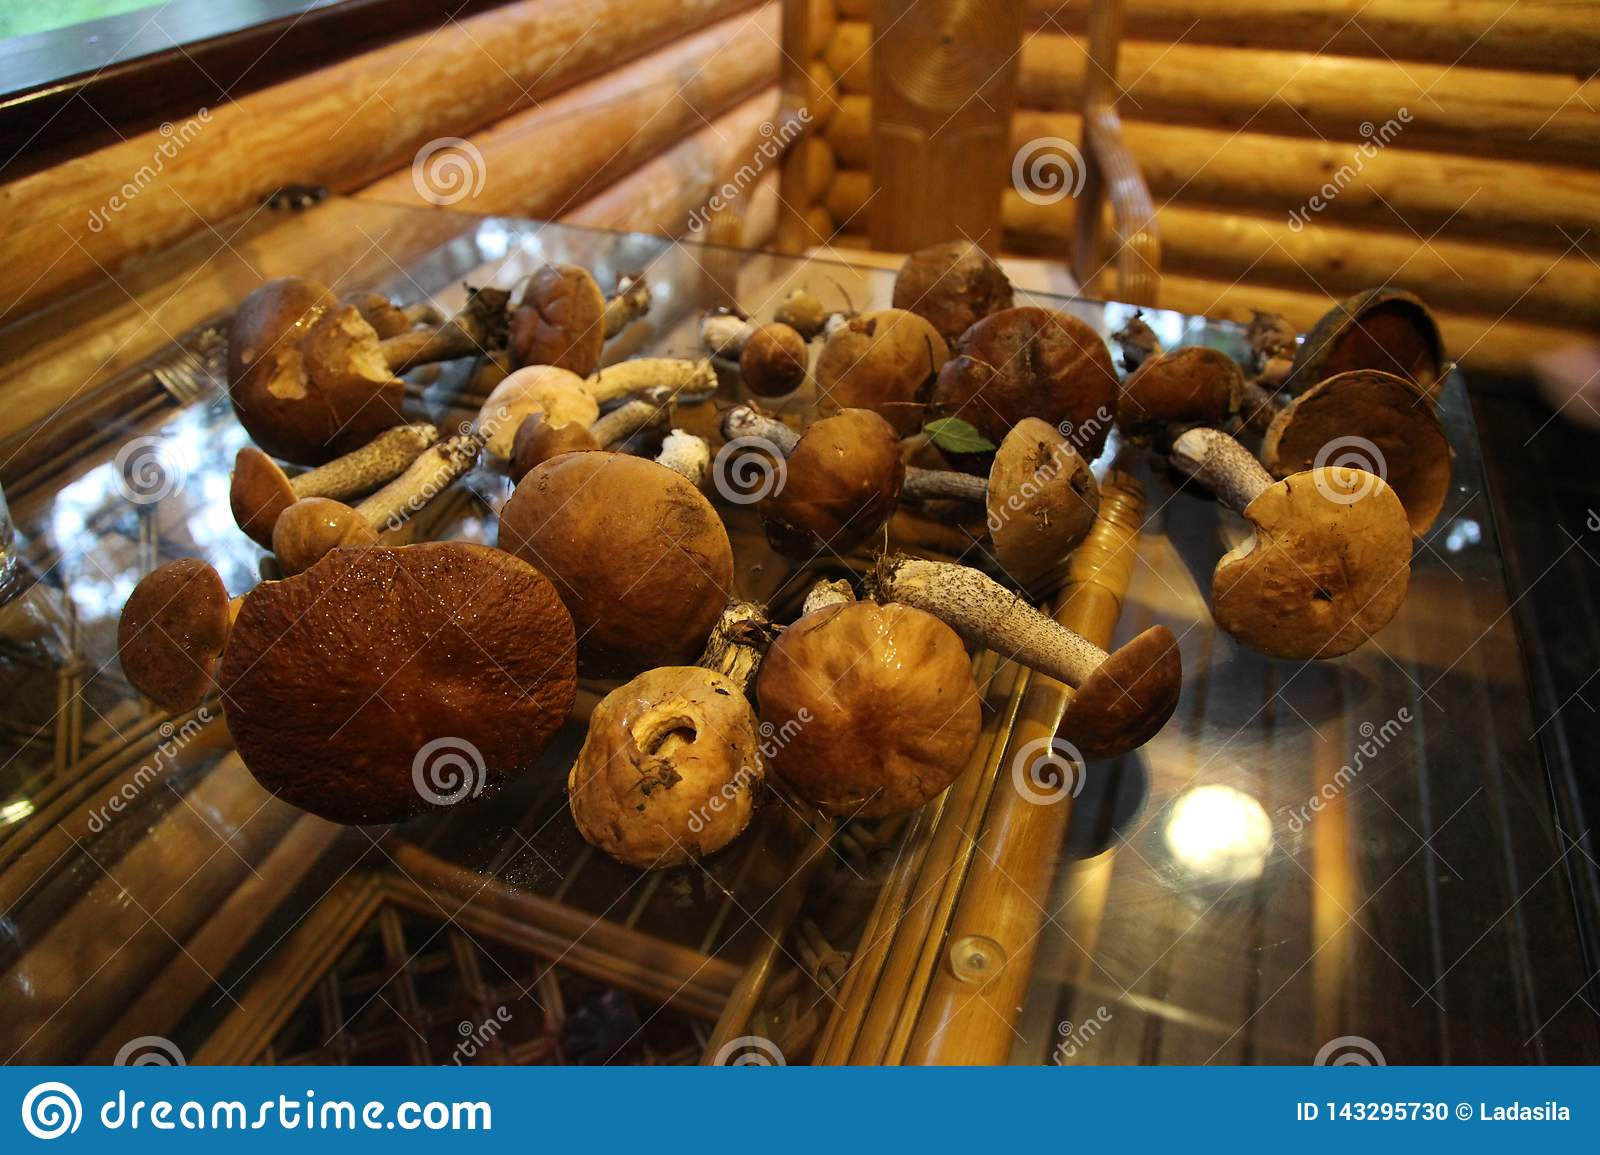 Mushrooms lie on a glass table in a wooden house